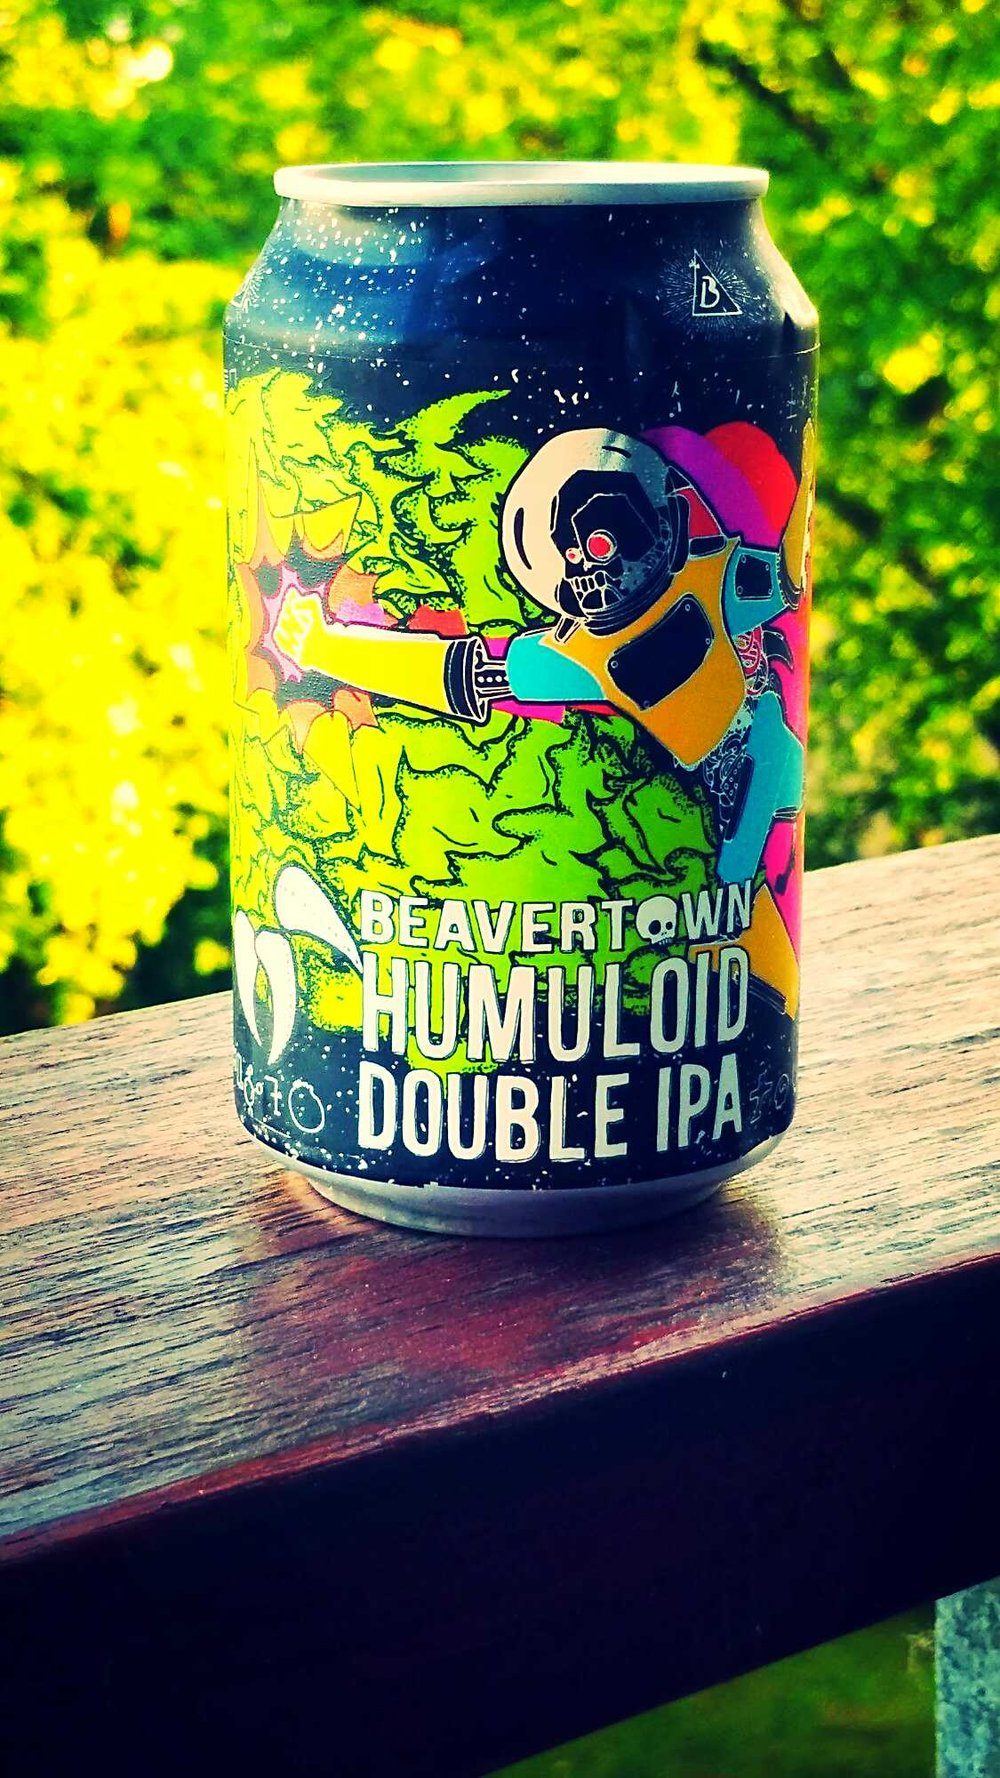 Humuloid - Double IPA 8% // Beavertown - A gift from a friend, we had fun comparing the varied art of the Humuloid cans before cracking these open and pouring them out. First impressions were; massively murk and so fresh. It was dense and packed full of flavour. I found the flavours a bit overpowering initially but it did grow on me. Overall, an enjoyable Imperial IPA and one I would return to.(Thanks to Friend of the Voyage, Jabo, for the picture)